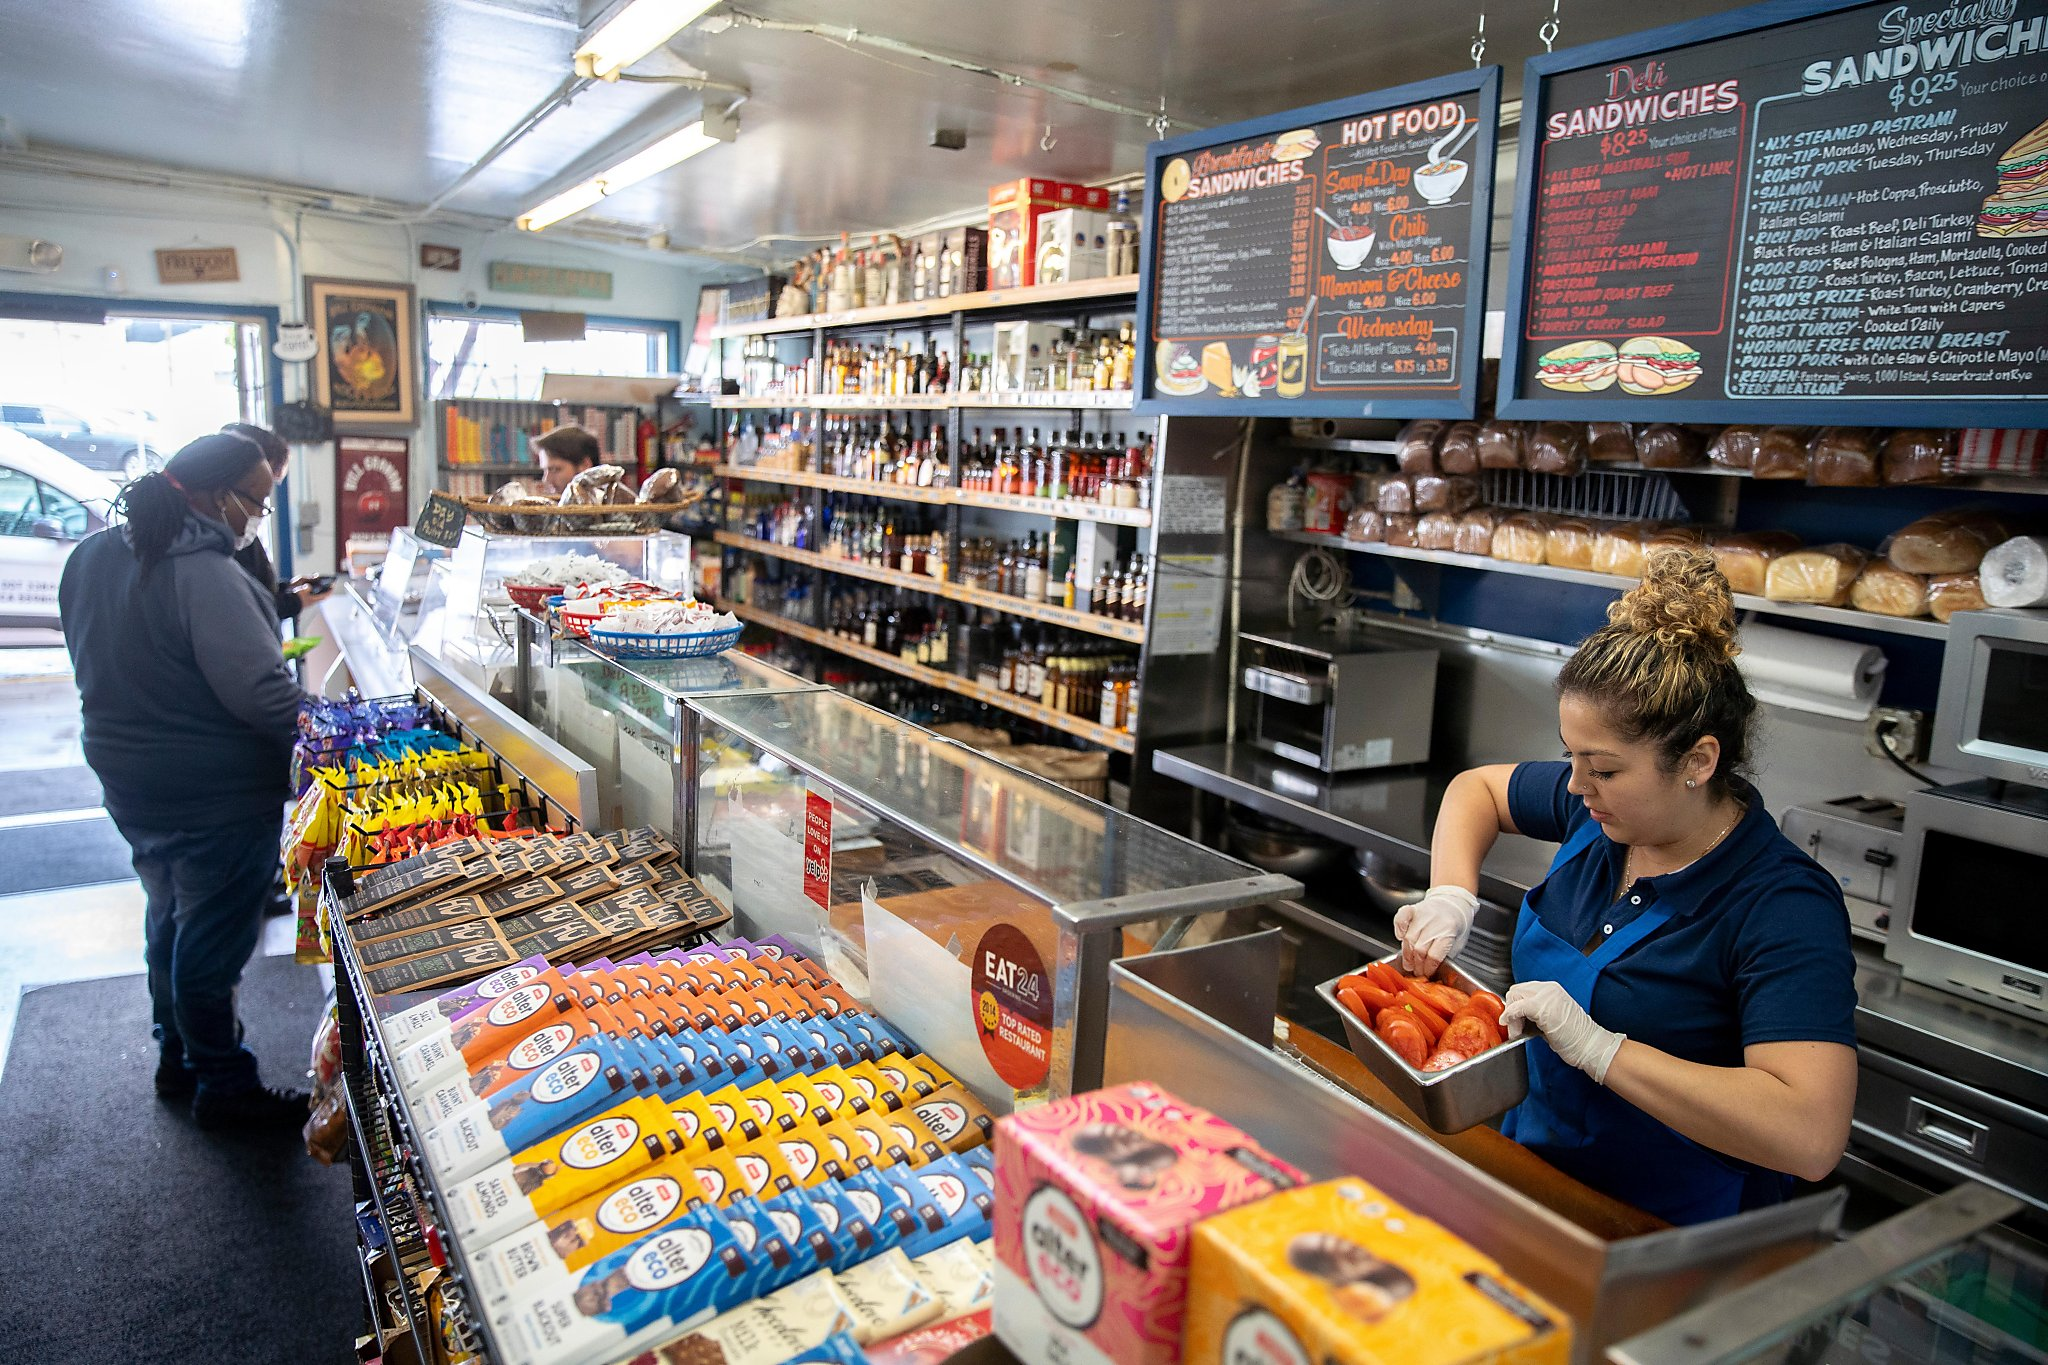 Bay Area Corner Stores Become A Lifeline During The Coronavirus Crisis Sfchronicle Com Hello everyone, i'm mr.nightmare 97 i'm a big fan of undertale, i really love that game. bay area corner stores become a